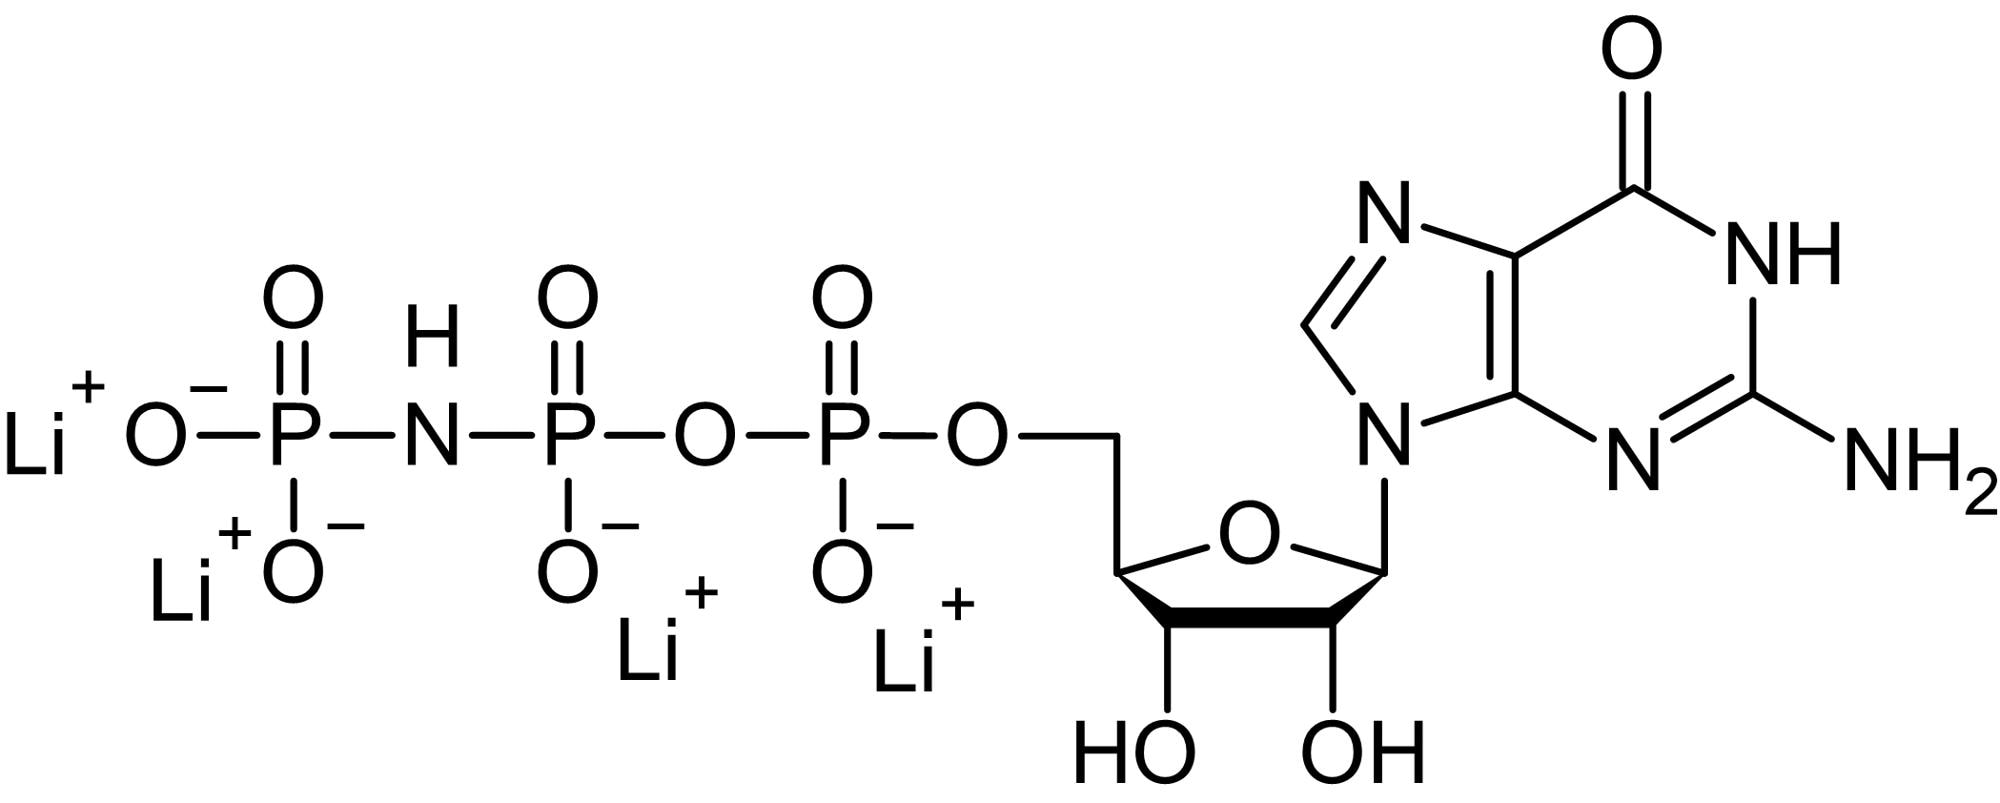 Chemical Structure - GppNHp, Non-hydrolyzable GTP analog (ab146659)